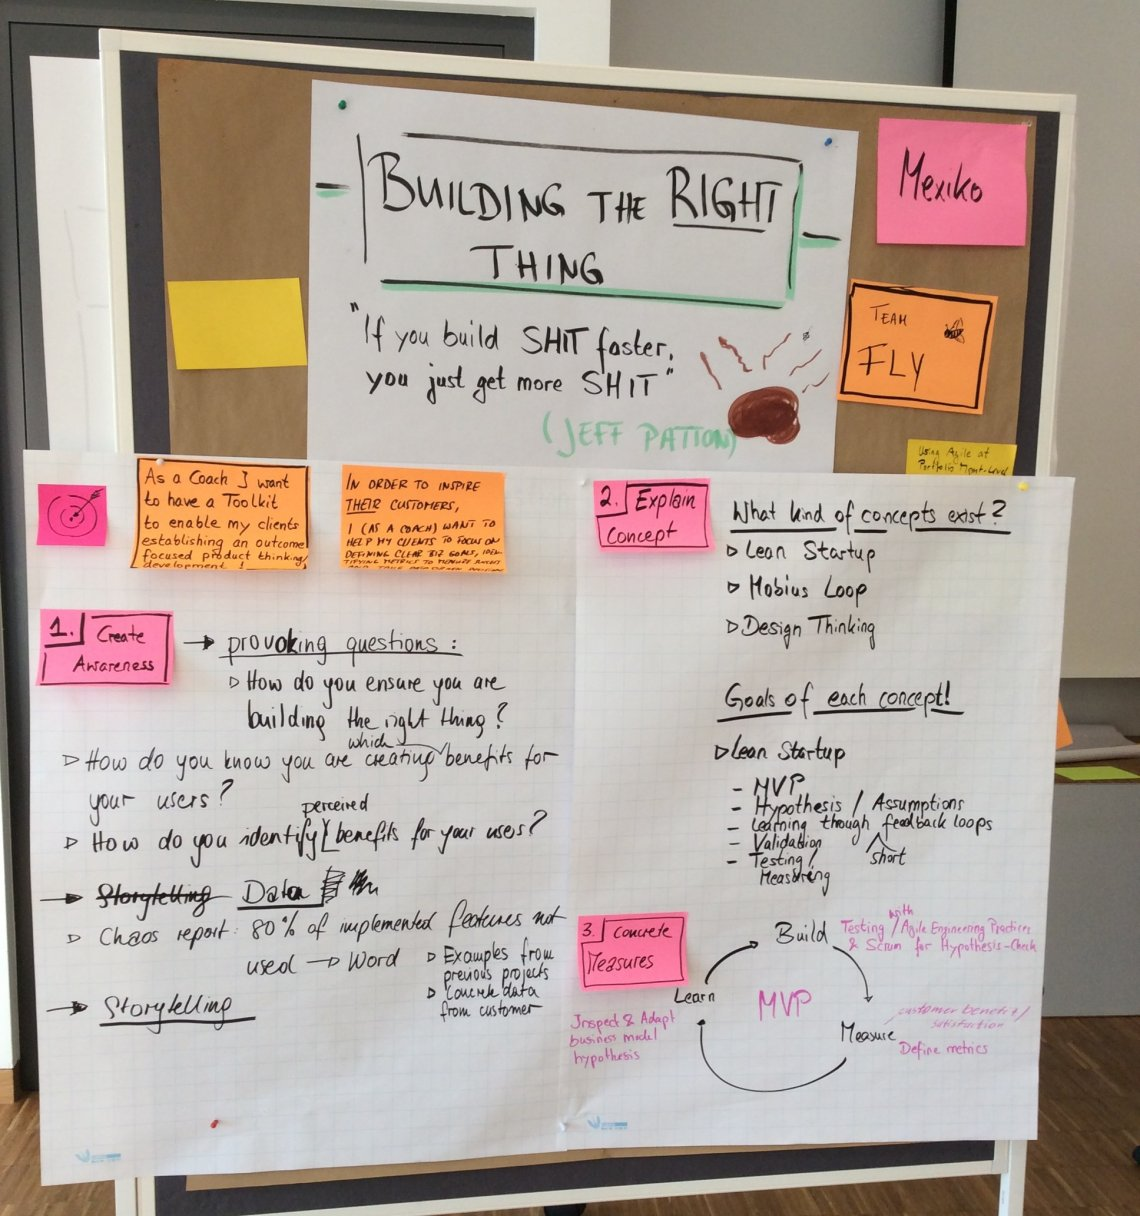 How to build the right thing - ein Plakat